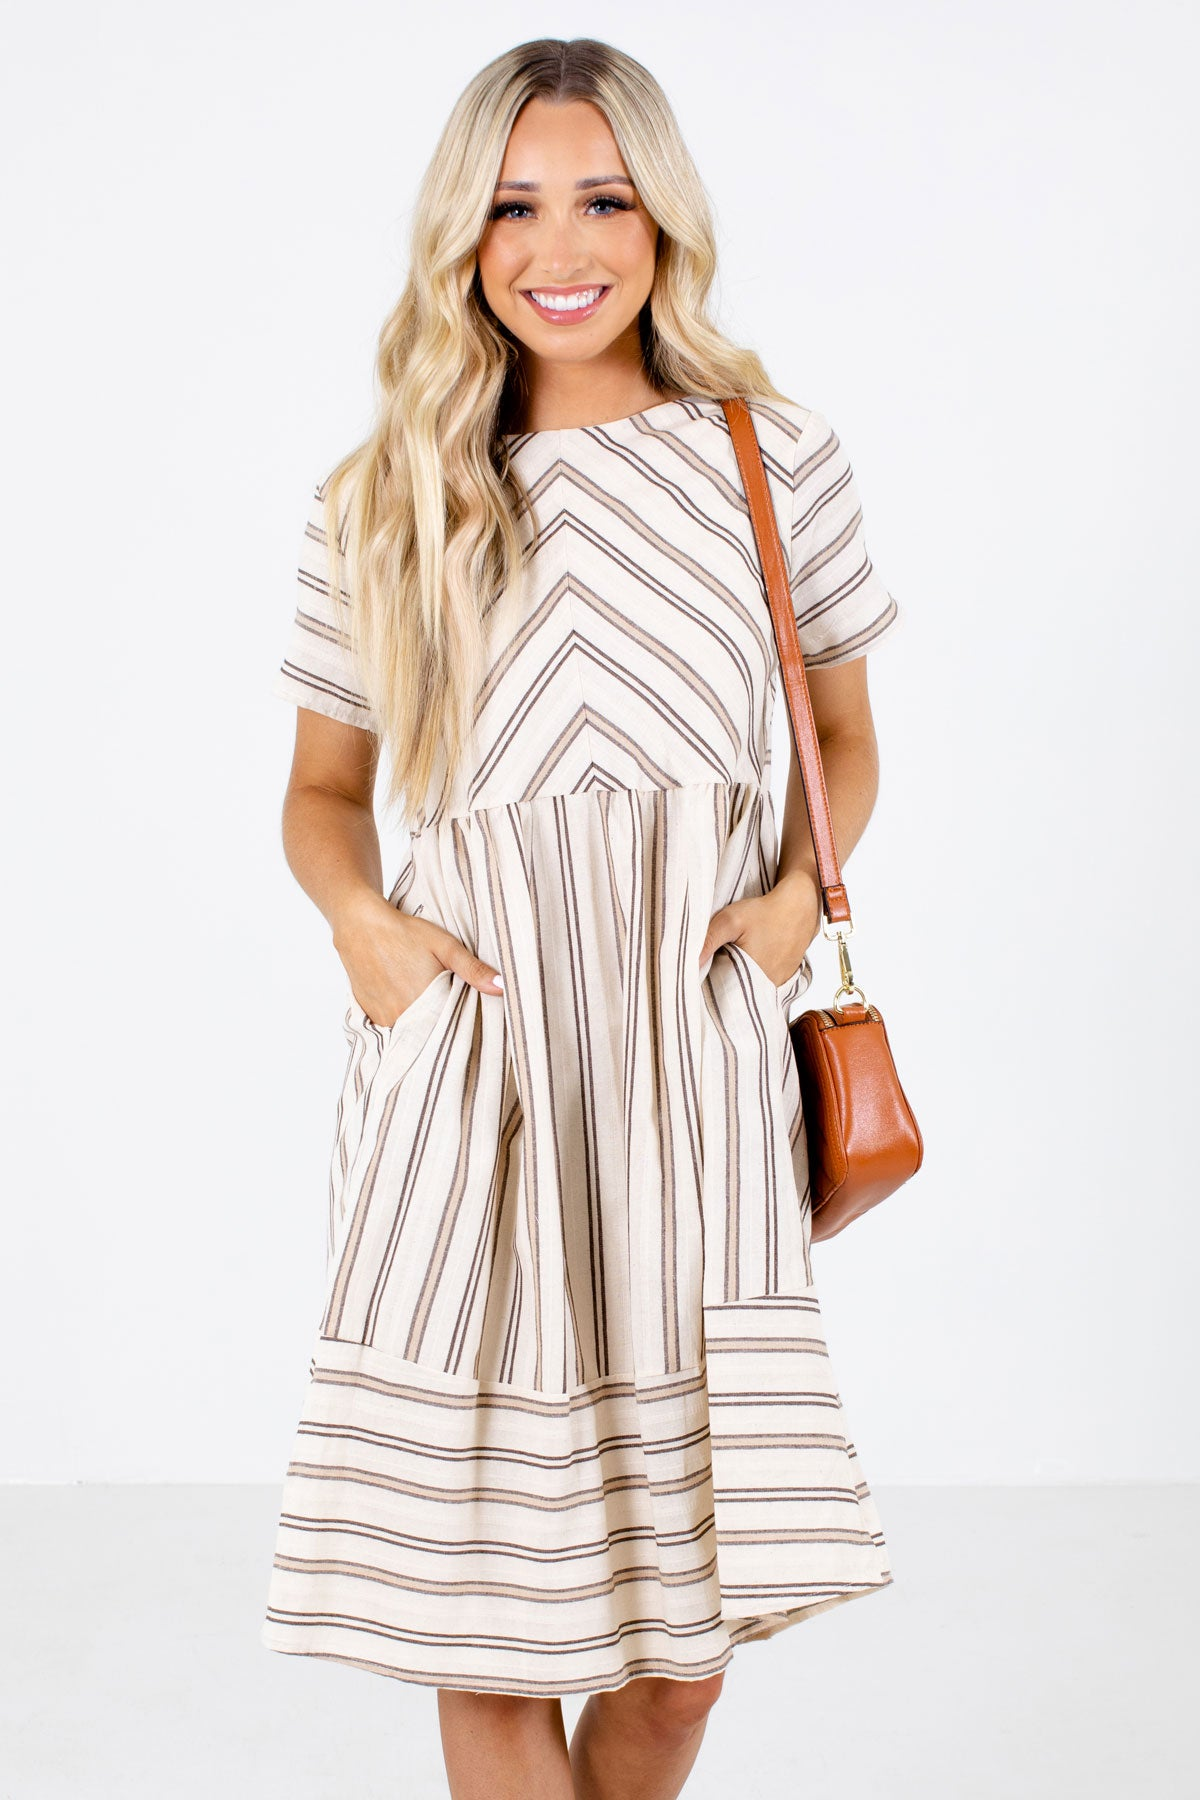 Brown Striped Boutique Knee-Length Dresses for Women, business casual dresses